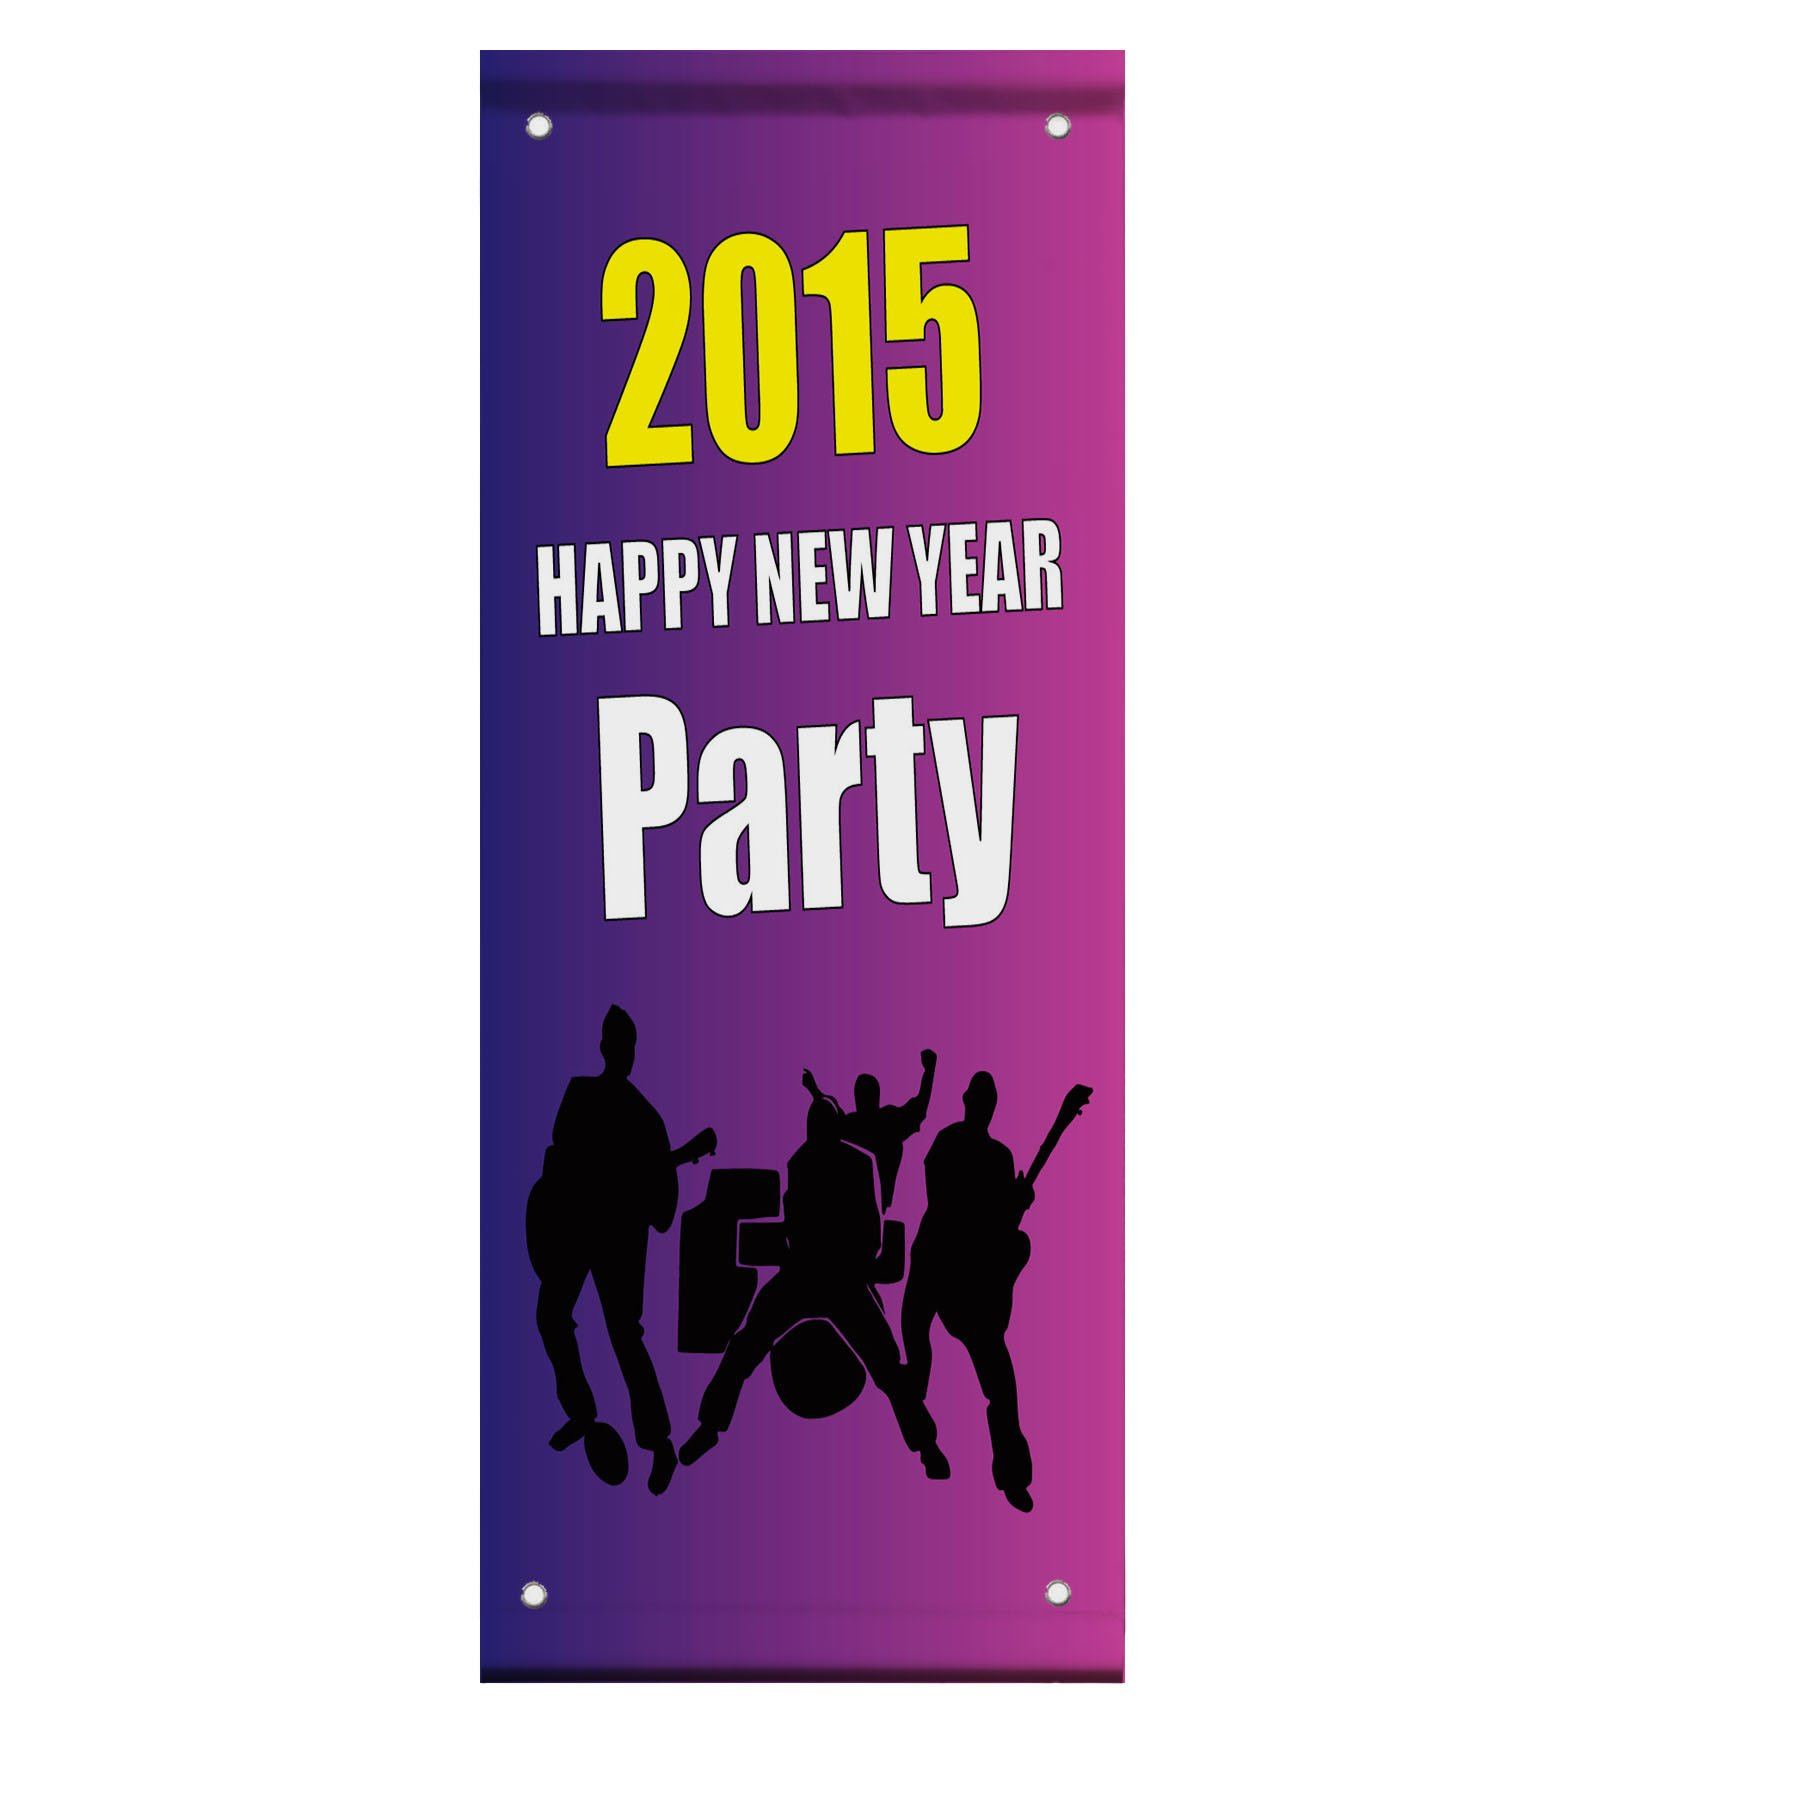 2015 Happy New Year Party Double Sided Vertical Pole Banner Sign 18 in x 26 in w/ Pole Bracket